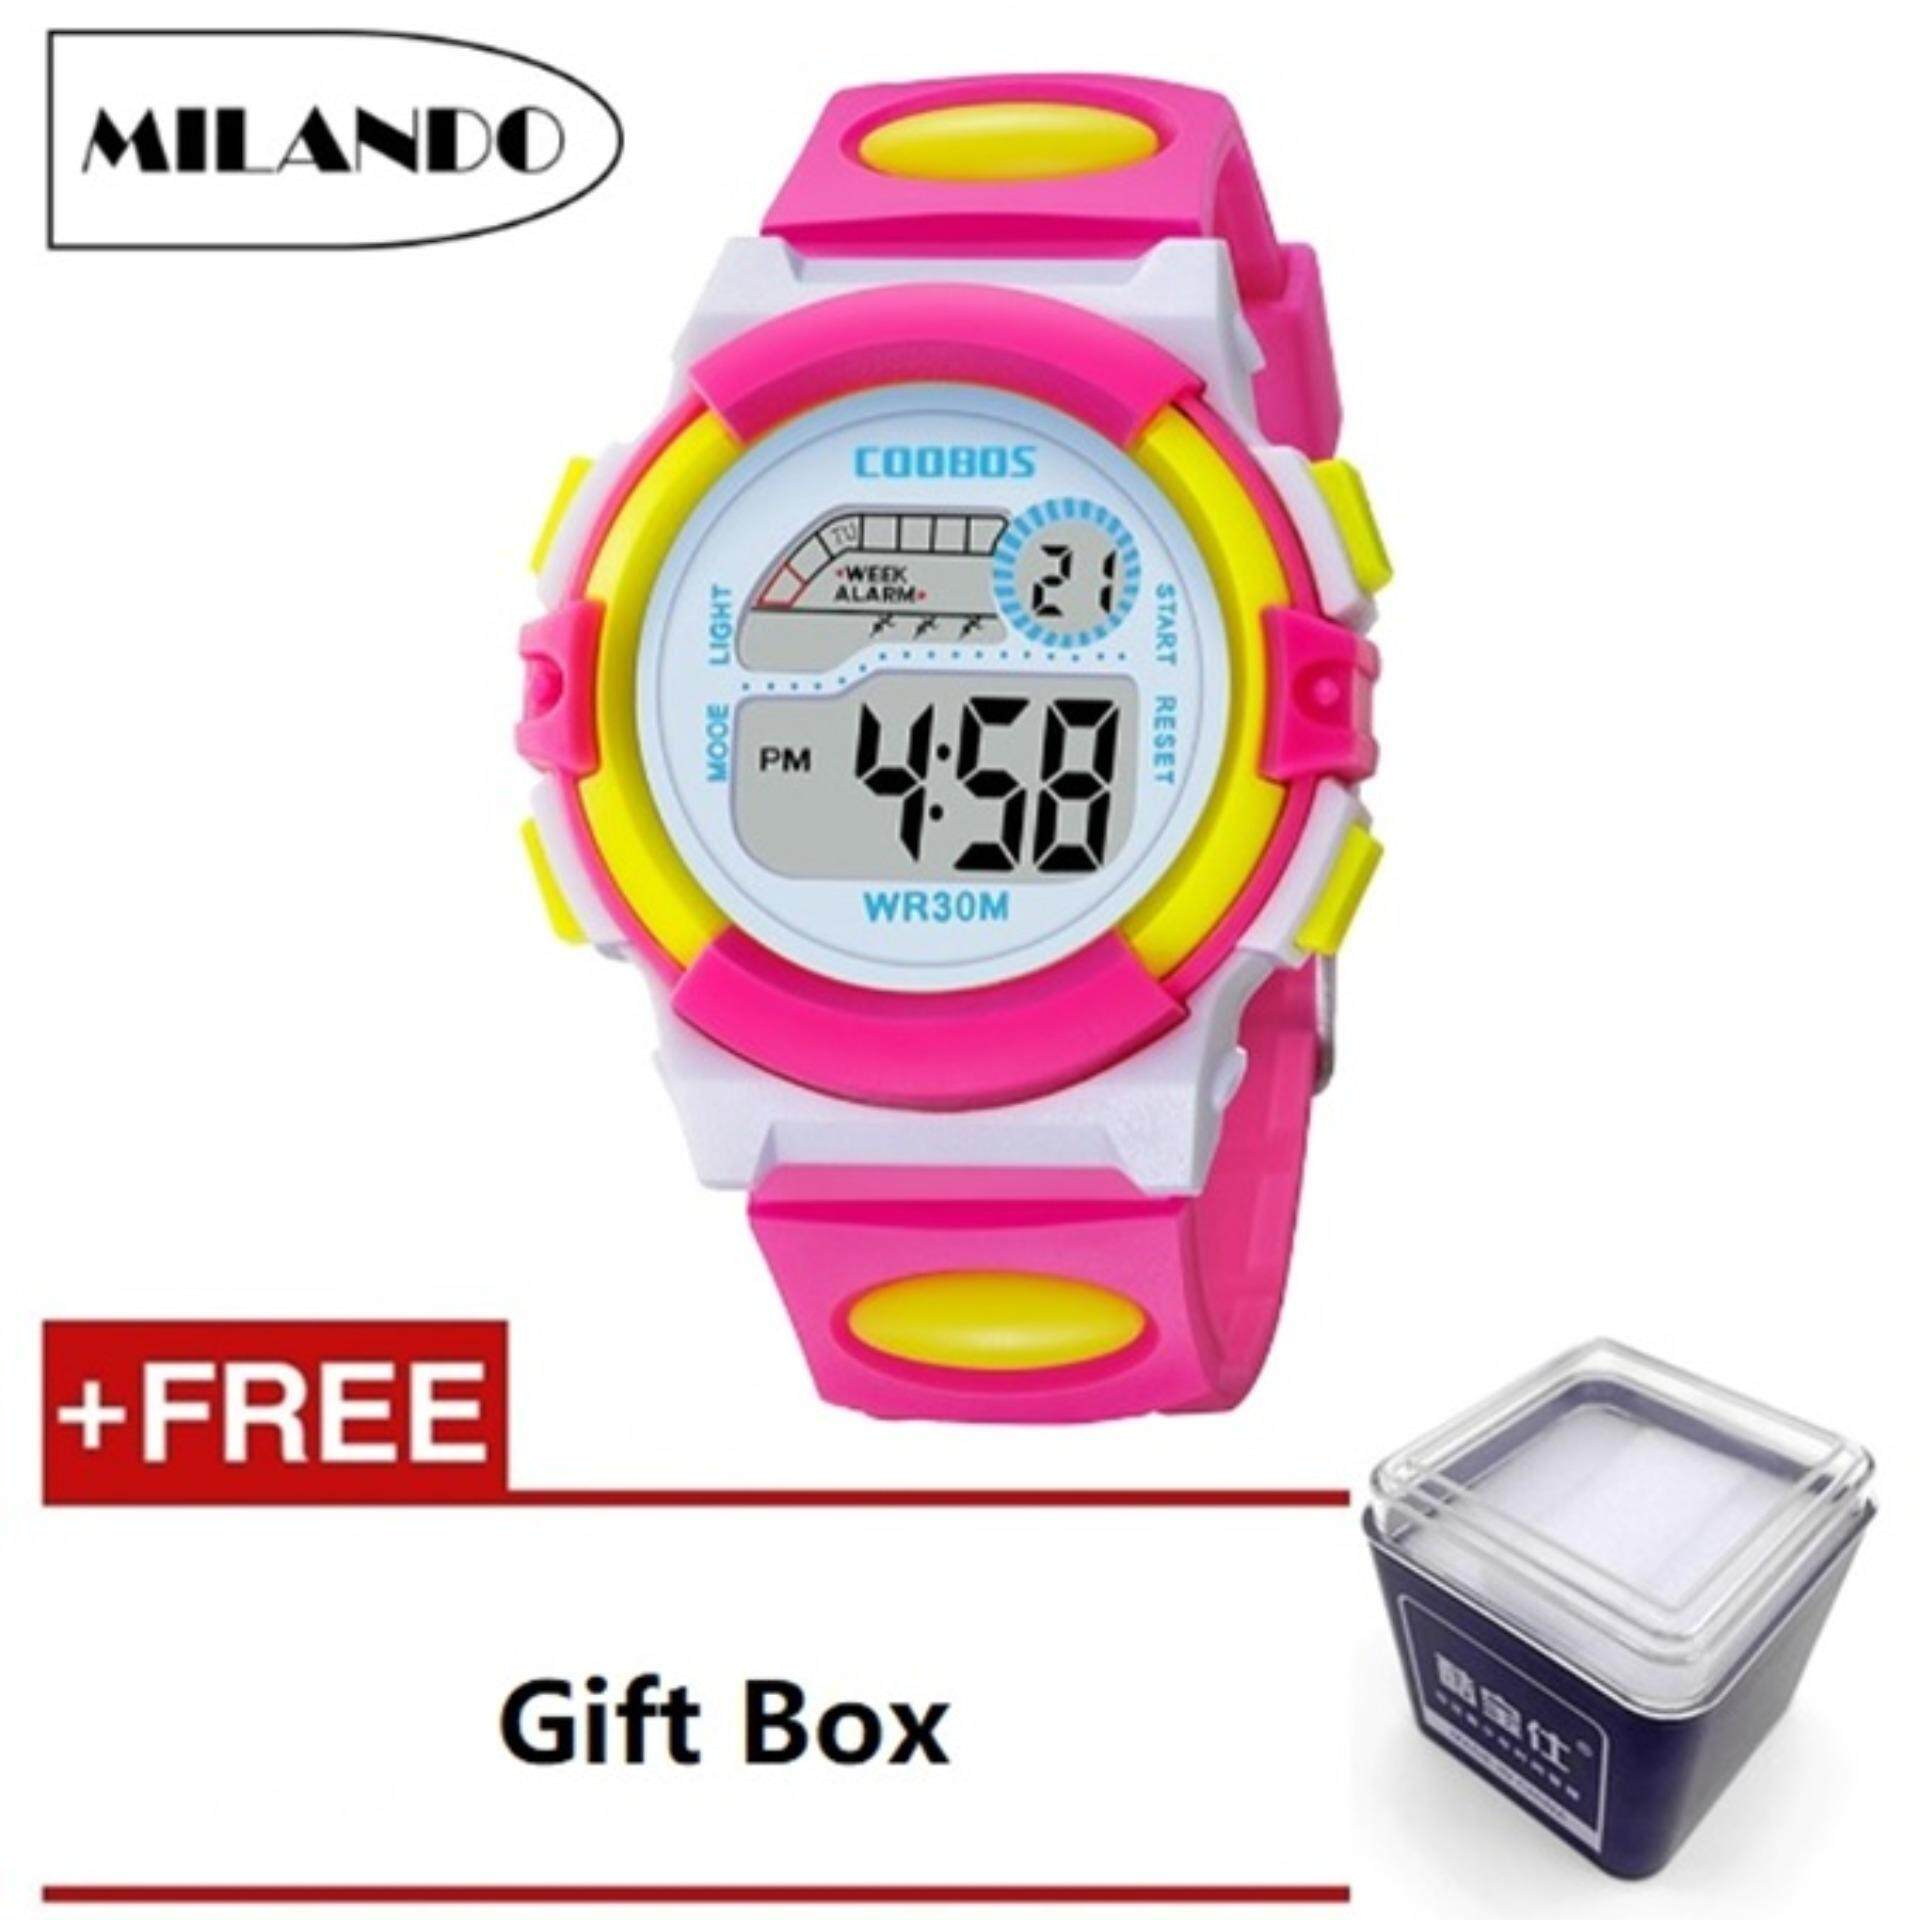 Milando Children Watches Led Digital Multifunctional 30m Waterproof Outdoor Sports Watch Free Gift Box (type 1) By Milando.